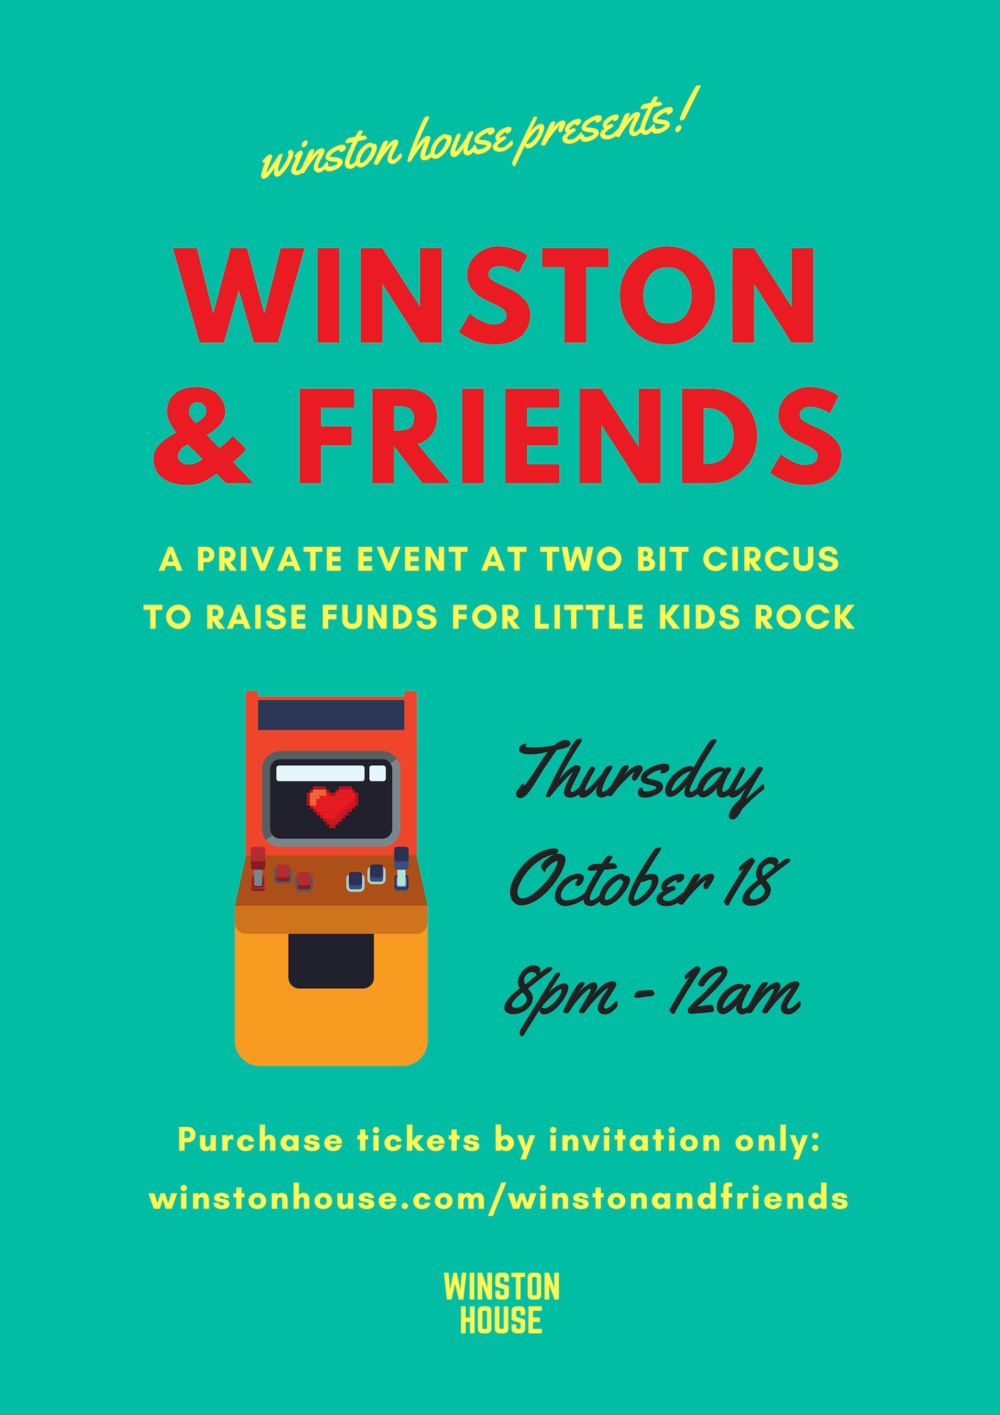 Winston & Friendsare taking over Two Bit Circus for a night to raise funds and awareness for Little Kids Rock. (8).png